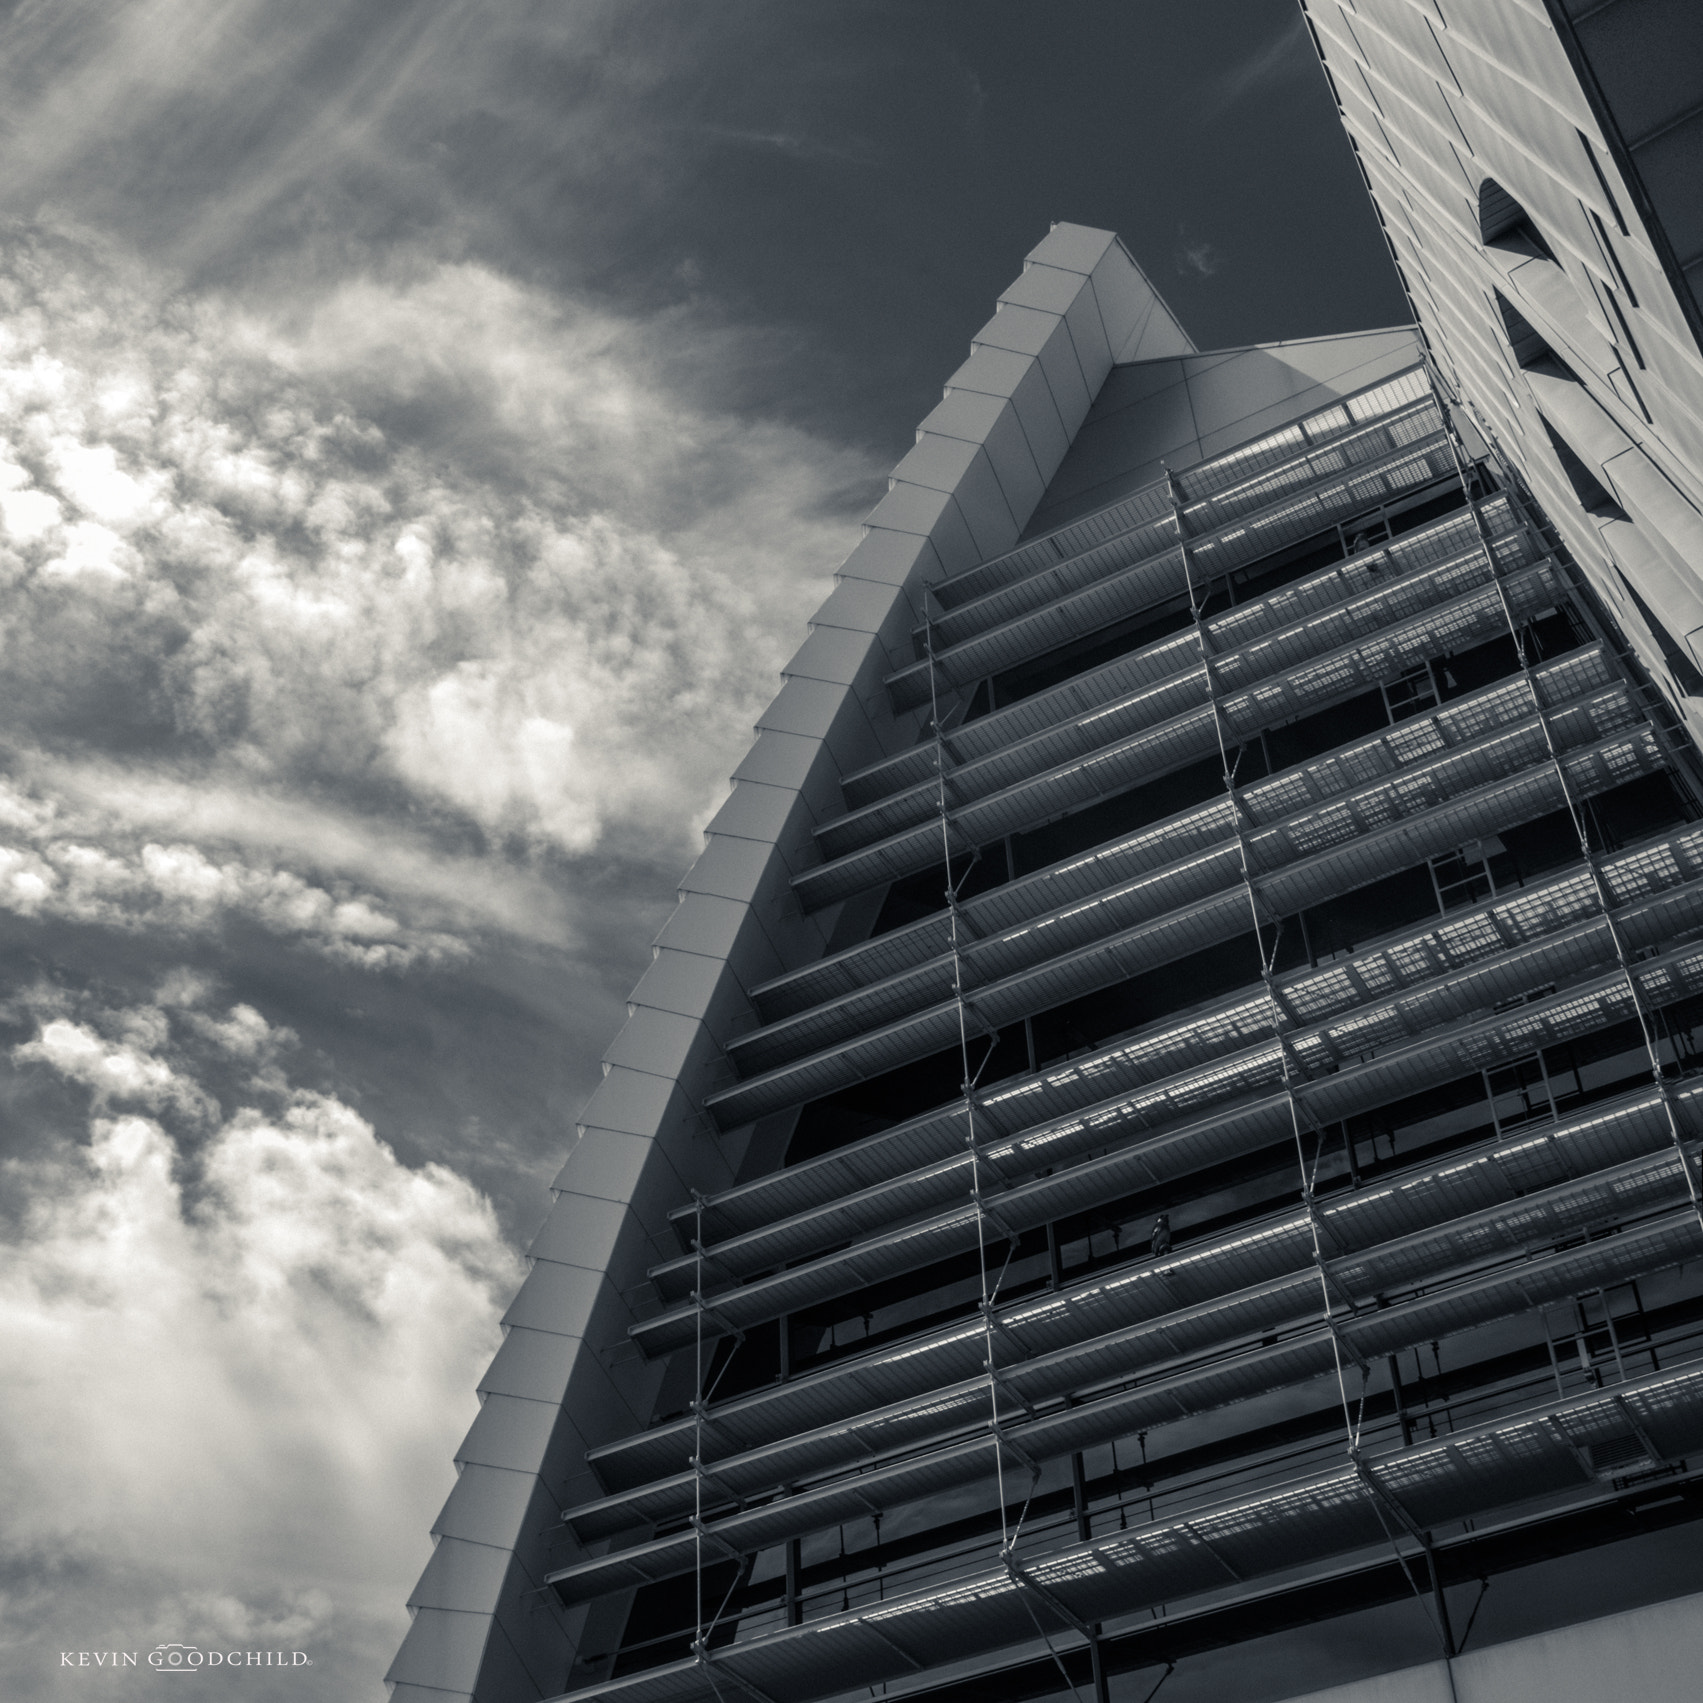 Photograph Reach for the sky by Kevin Goodchild on 500px